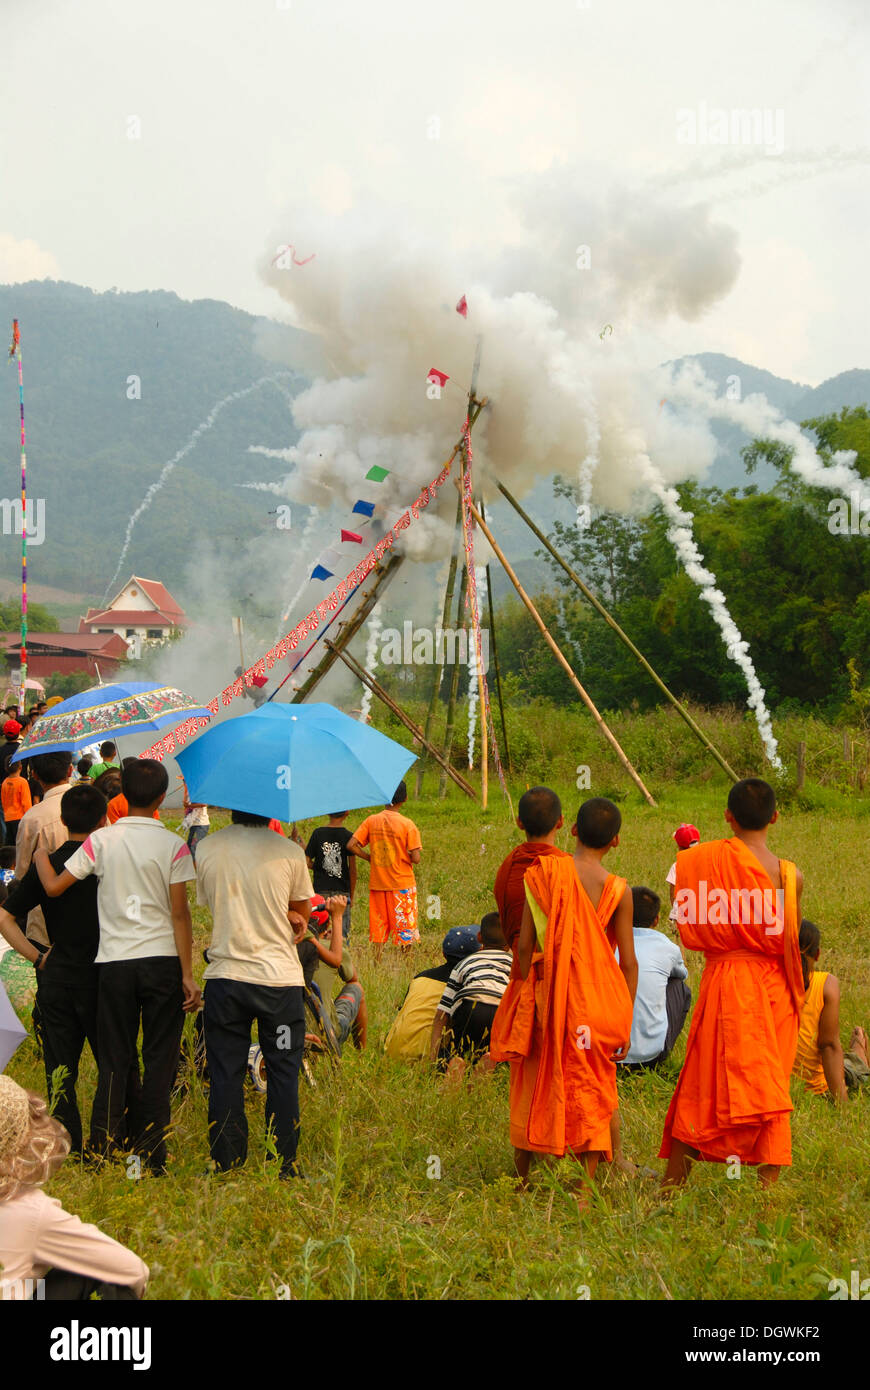 Festival, rocket firing, bang fai, launch and explosion of a rocket on the launch pad, monks in orange robes looking - Stock Image